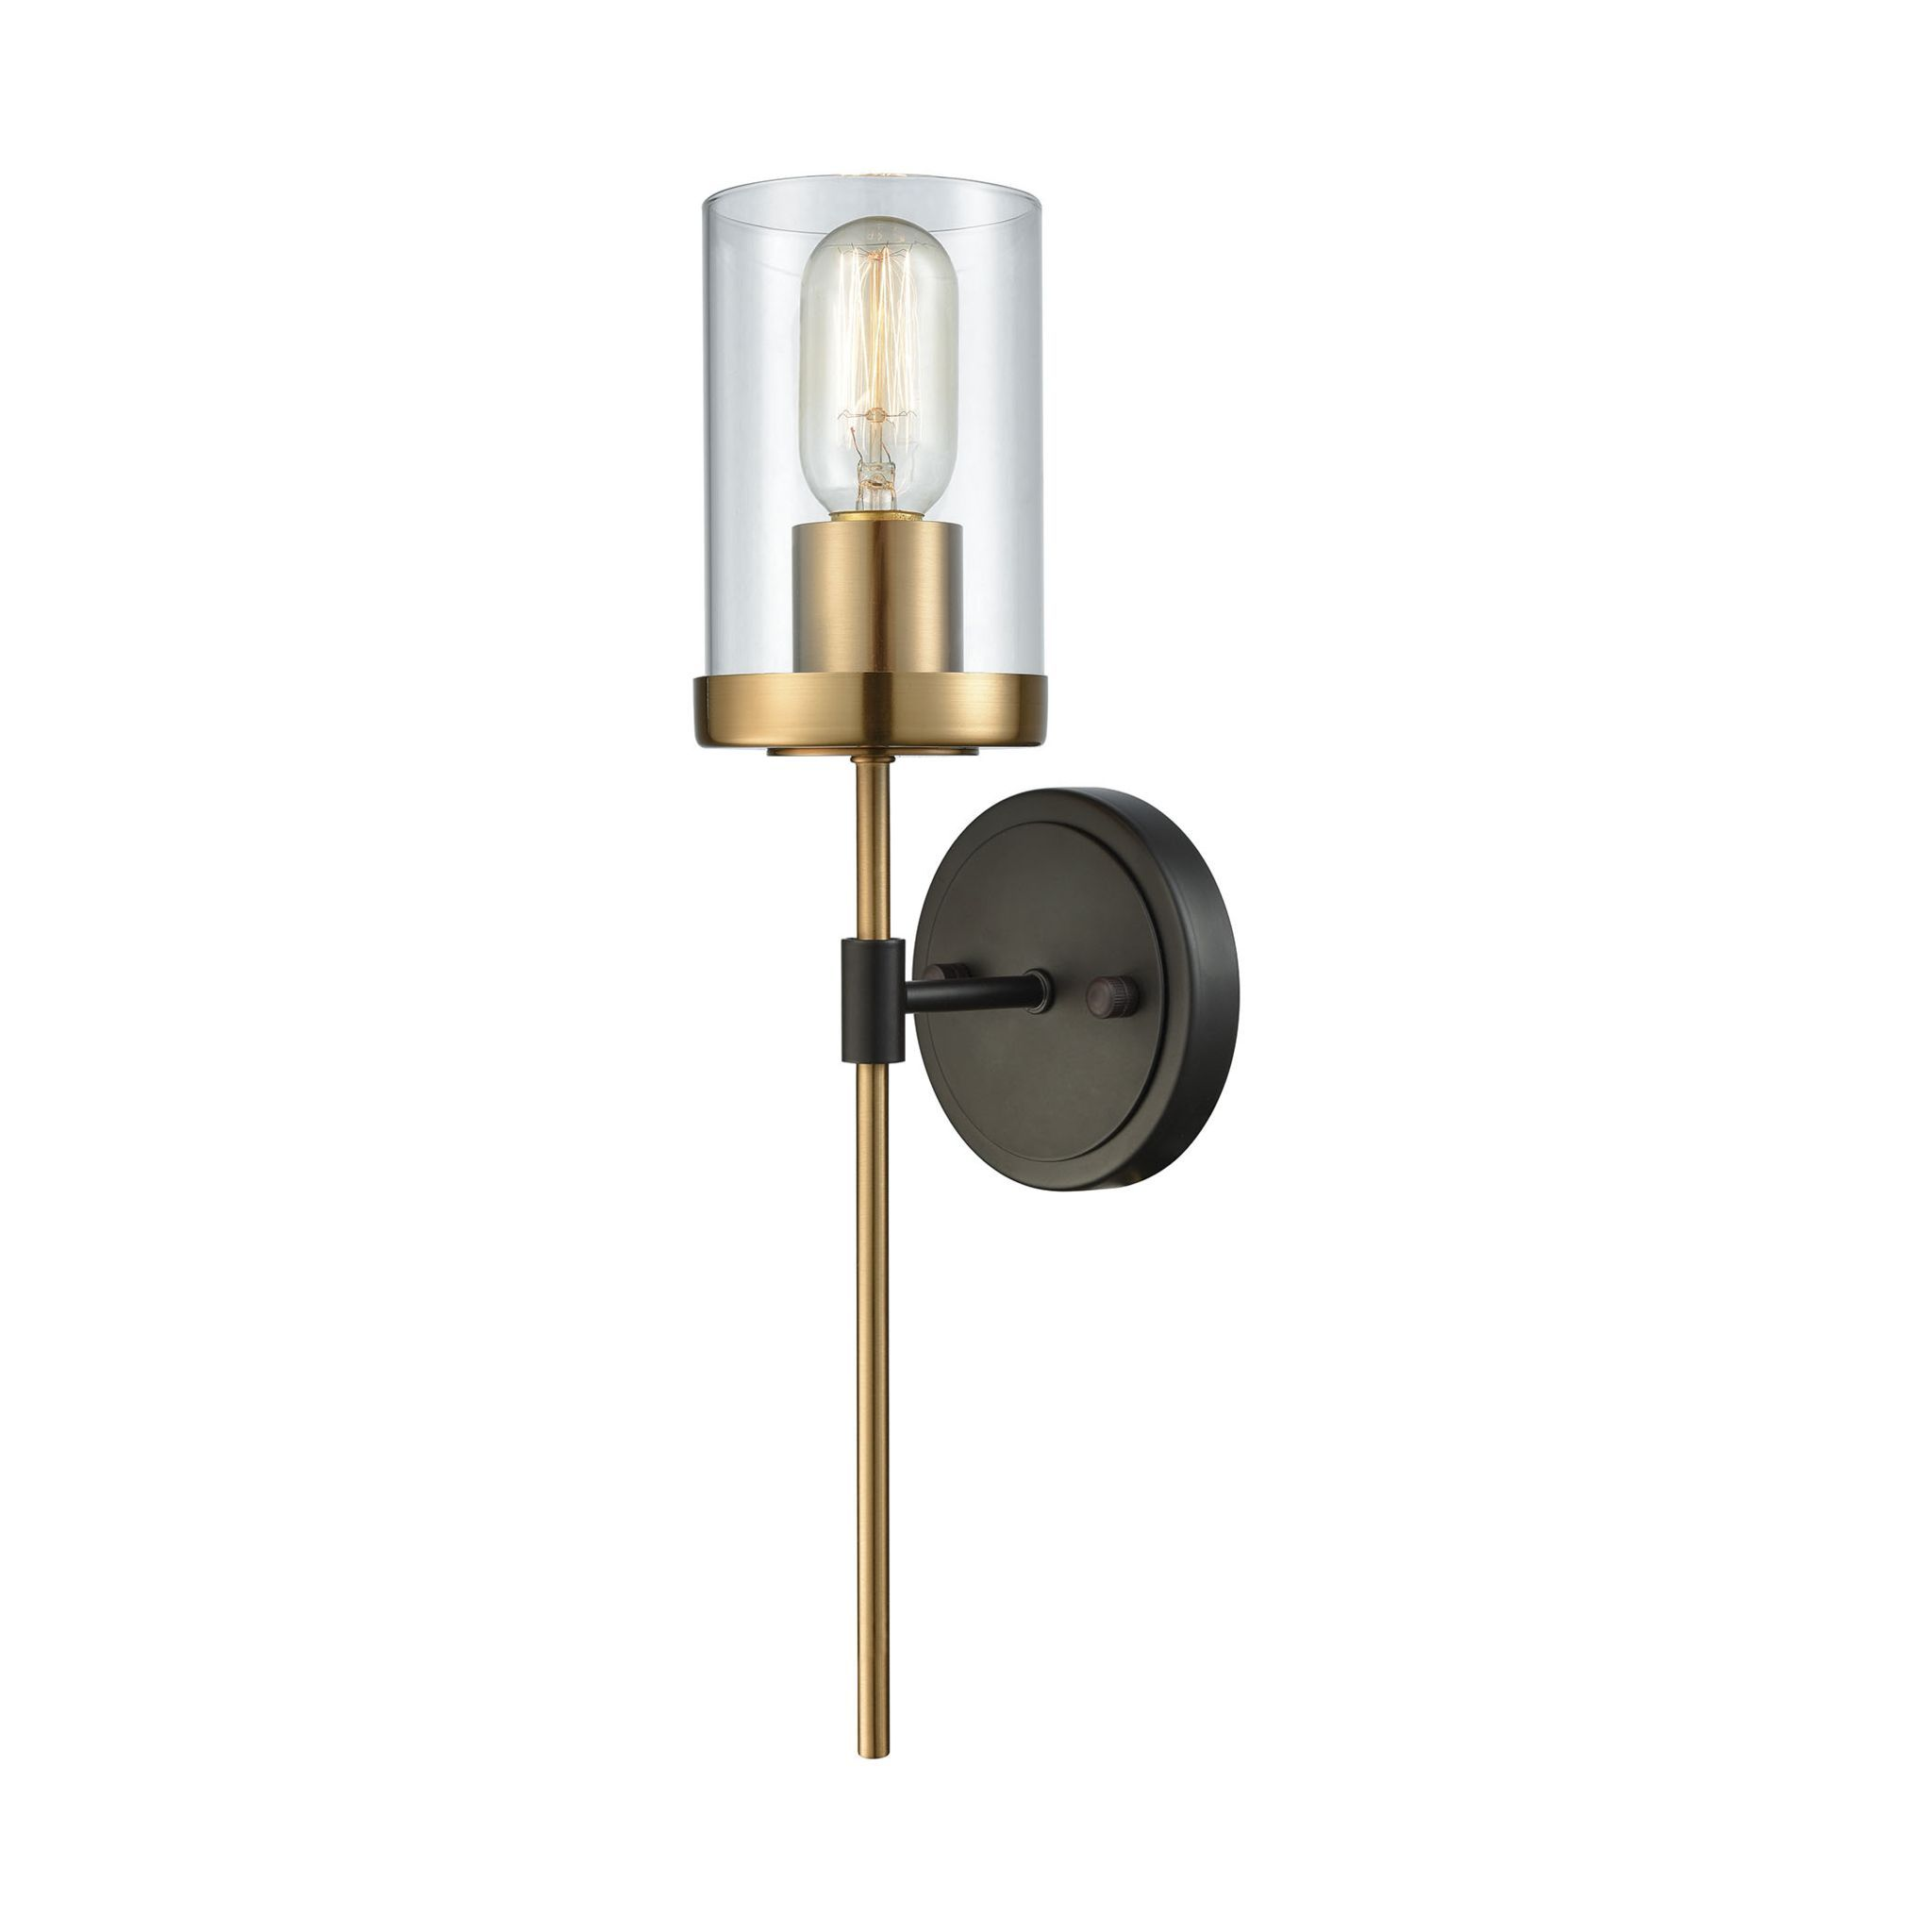 North haven satin brass and oil rubbed bronze wall sconce by elk